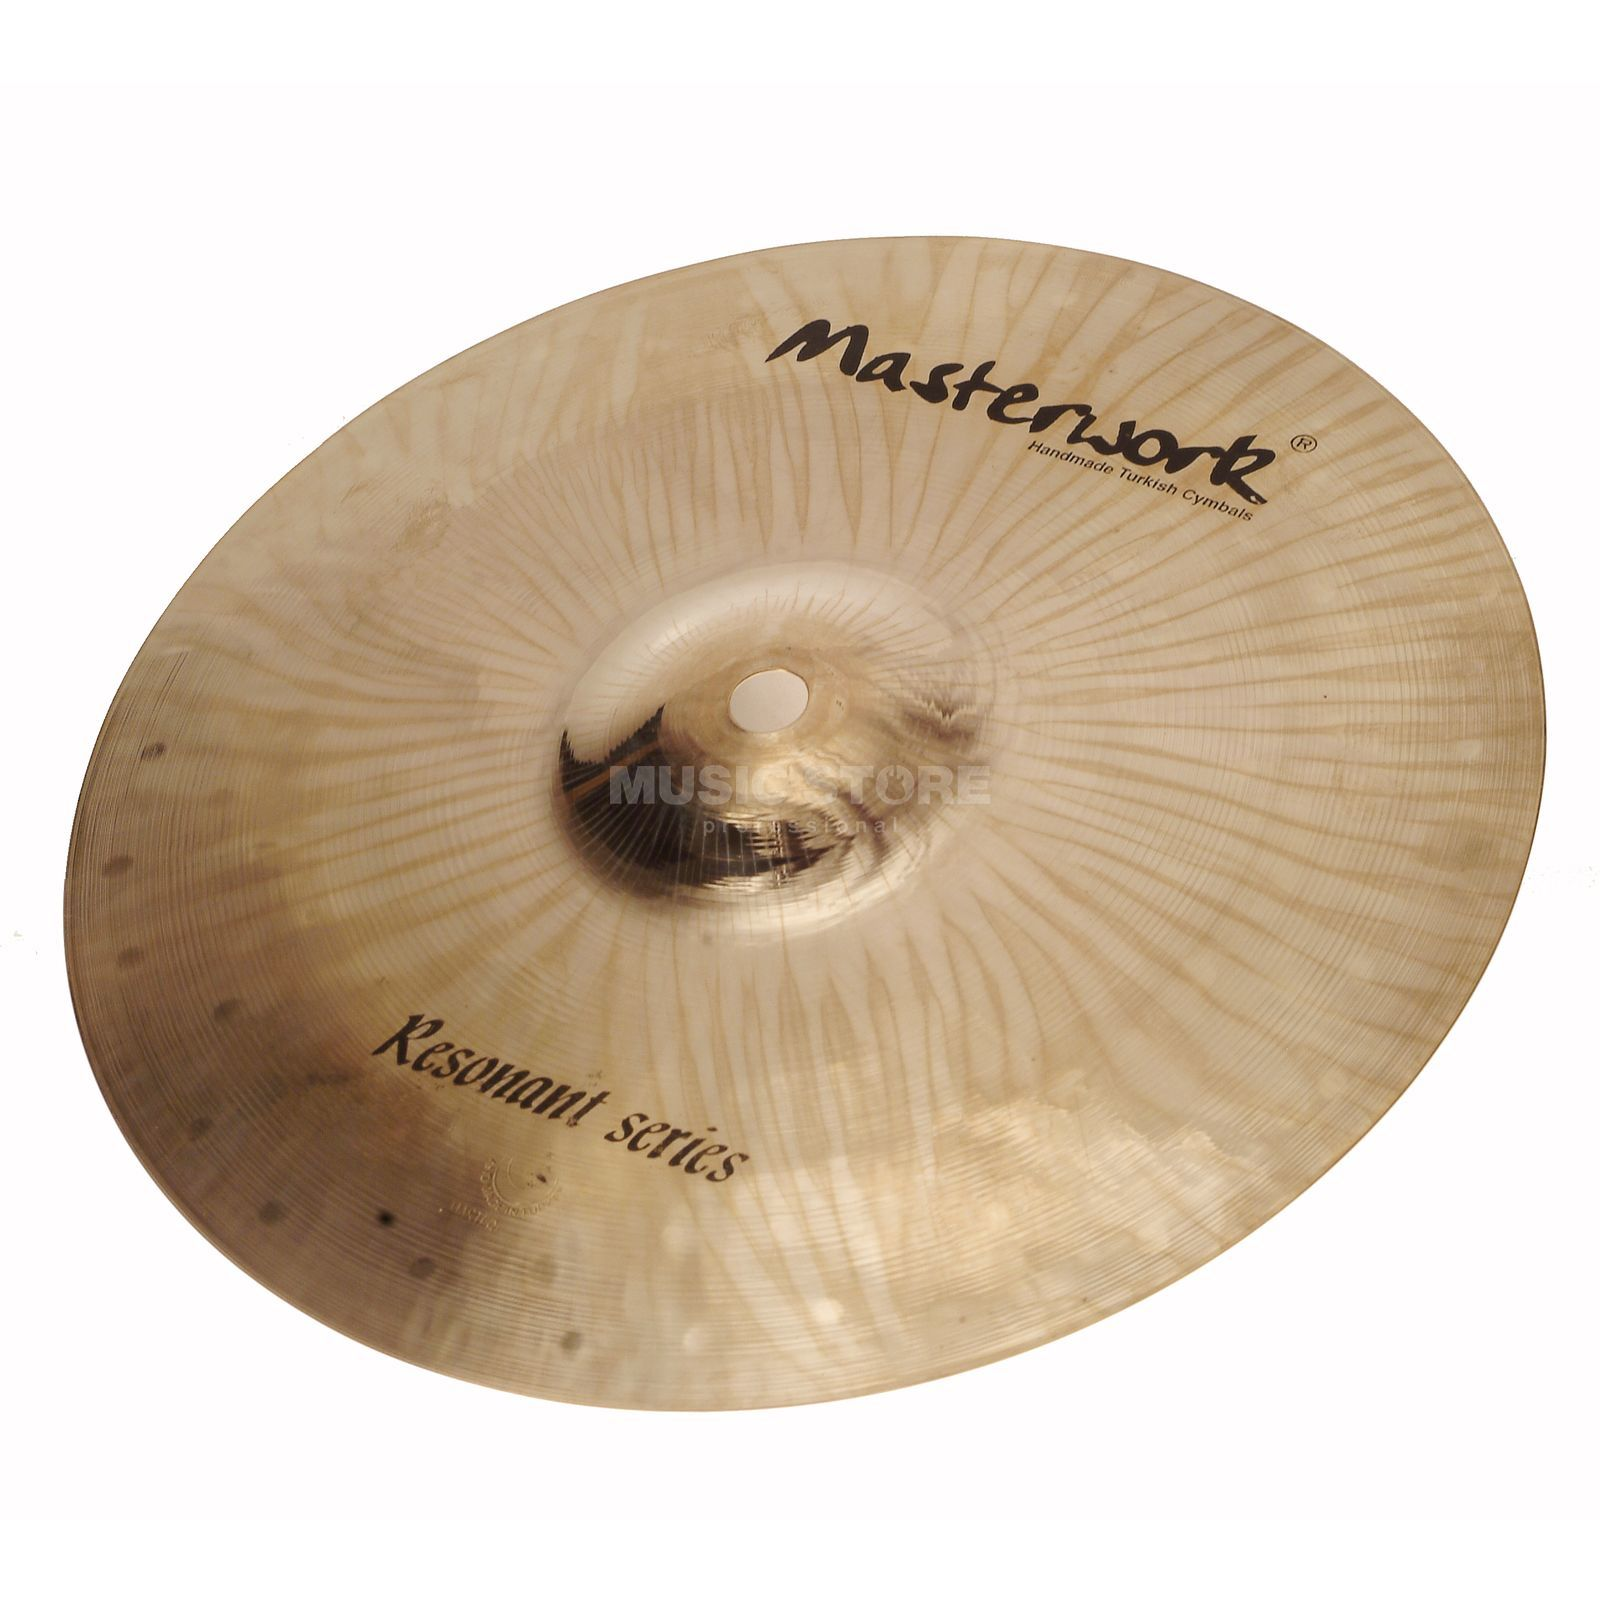 "Masterwork Resonant Splash 12"" Brilliant Finish Immagine prodotto"